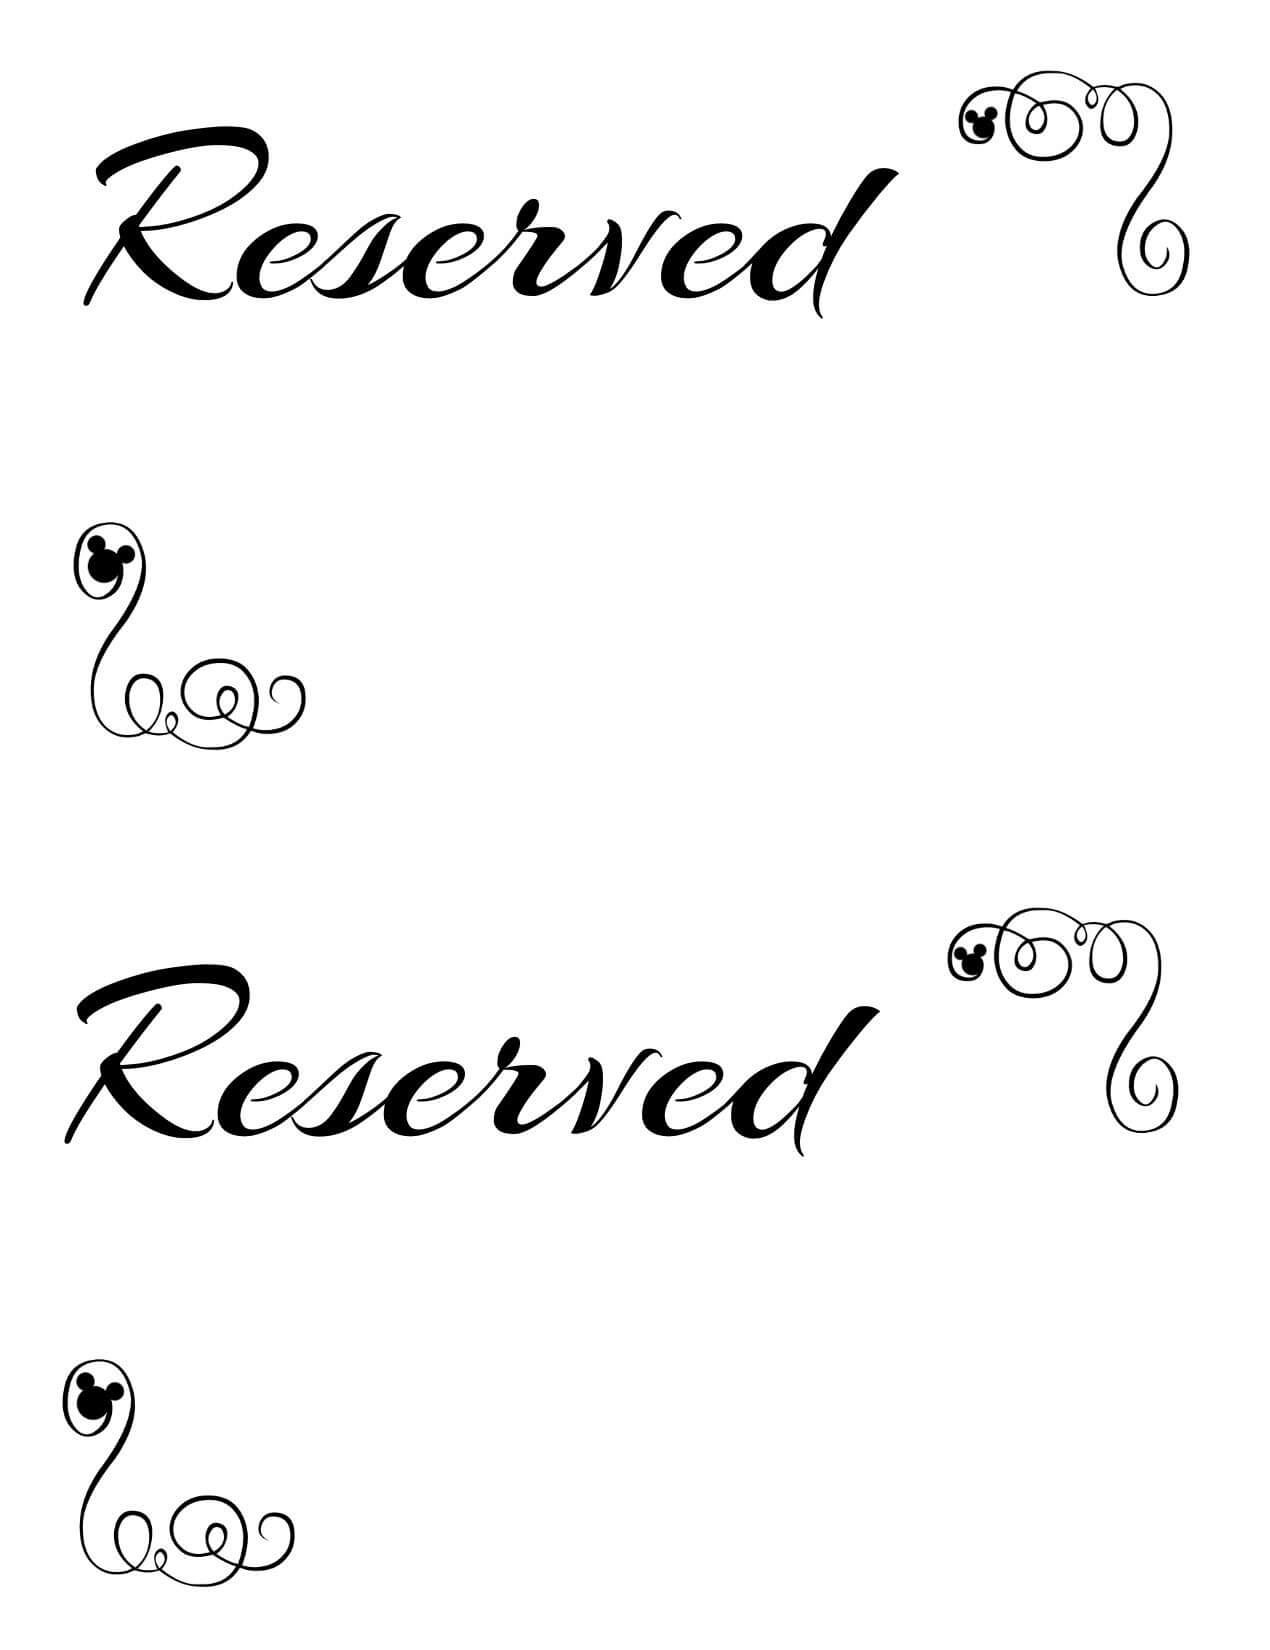 Free Printable Reserved Seating Signs For Your Wedding throughout Reserved Cards For Tables Templates